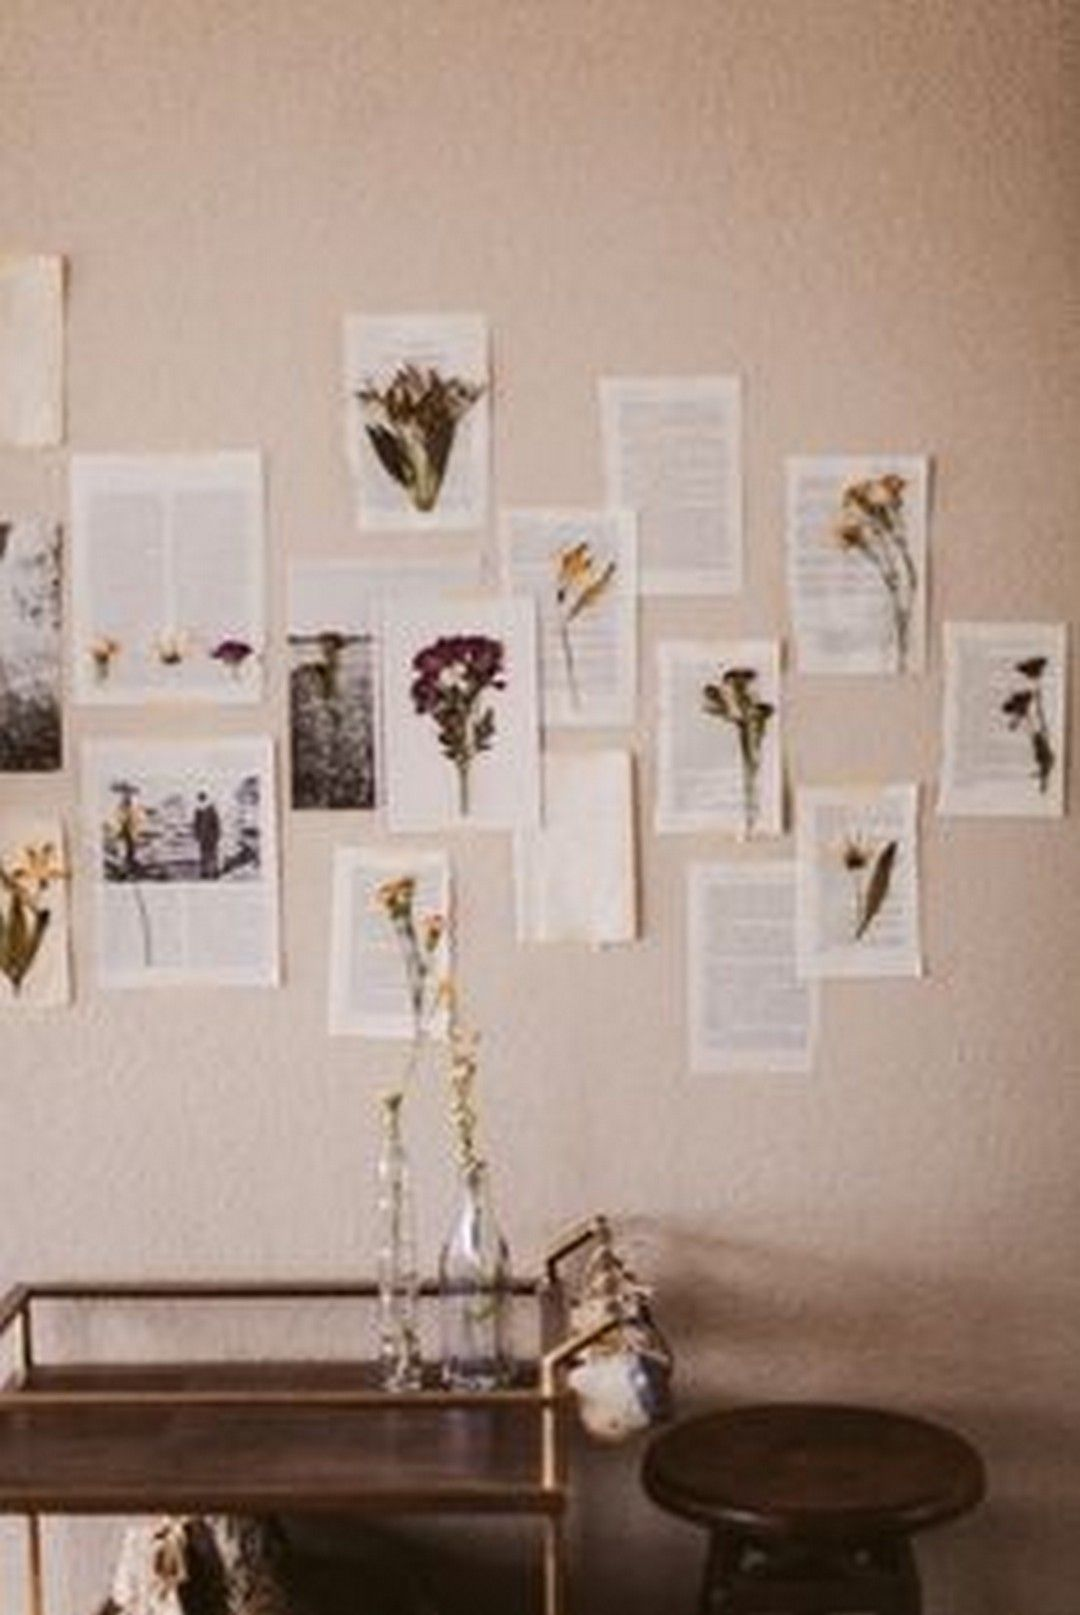 10 Simple Things To Decorate Room With These Diy Wall Decor Ideas Goodnewsarchitecture Wall Decor Bedroom Floral Wall Art Diy Decor